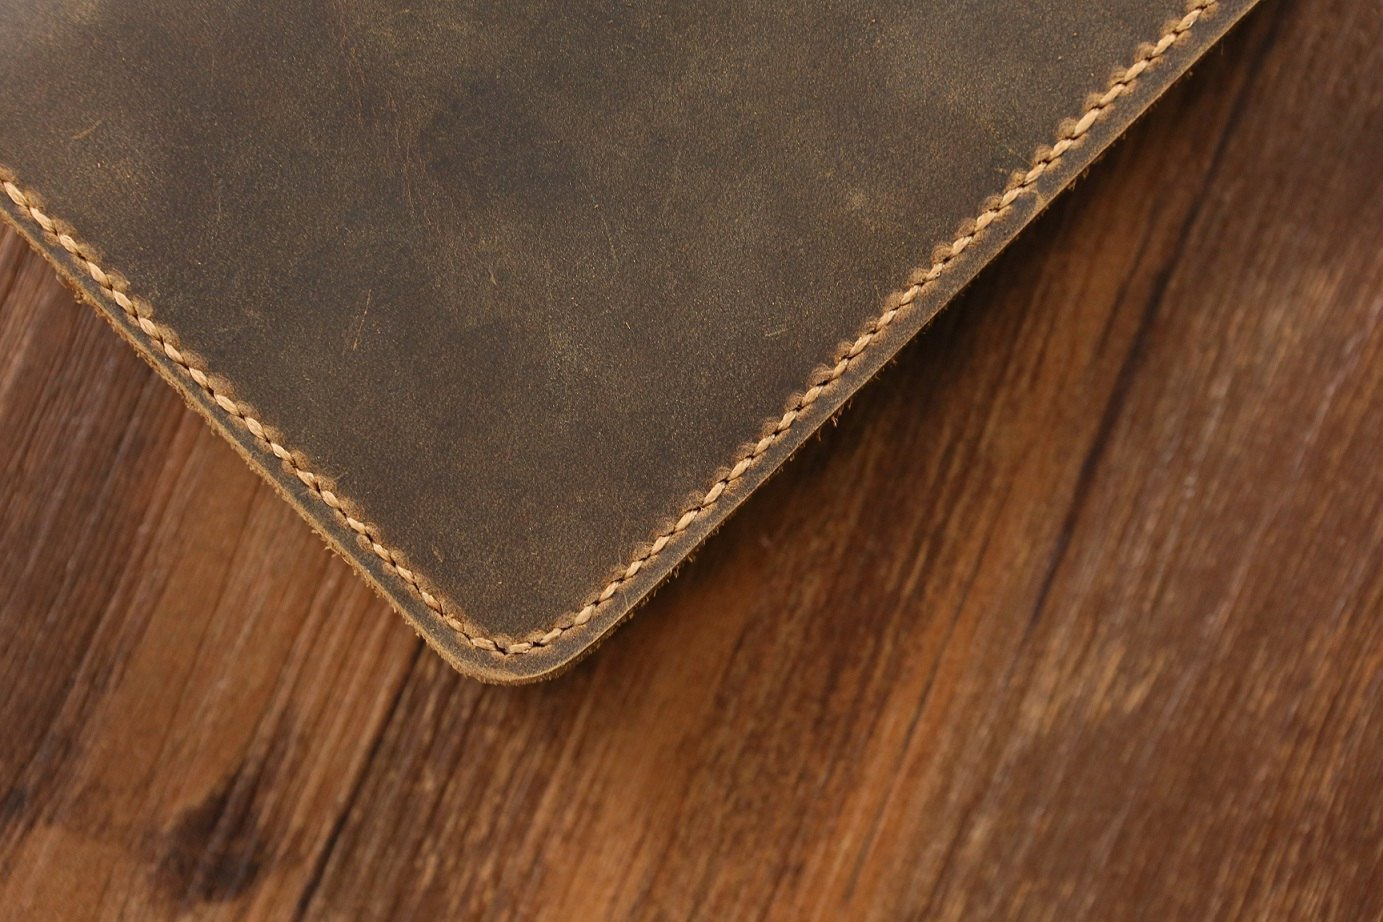 Vintage A6 notebook field notes leather Portfolio cover / distressed leather travel journal cover with card pen slot -NB005S by D&M Leather Studio